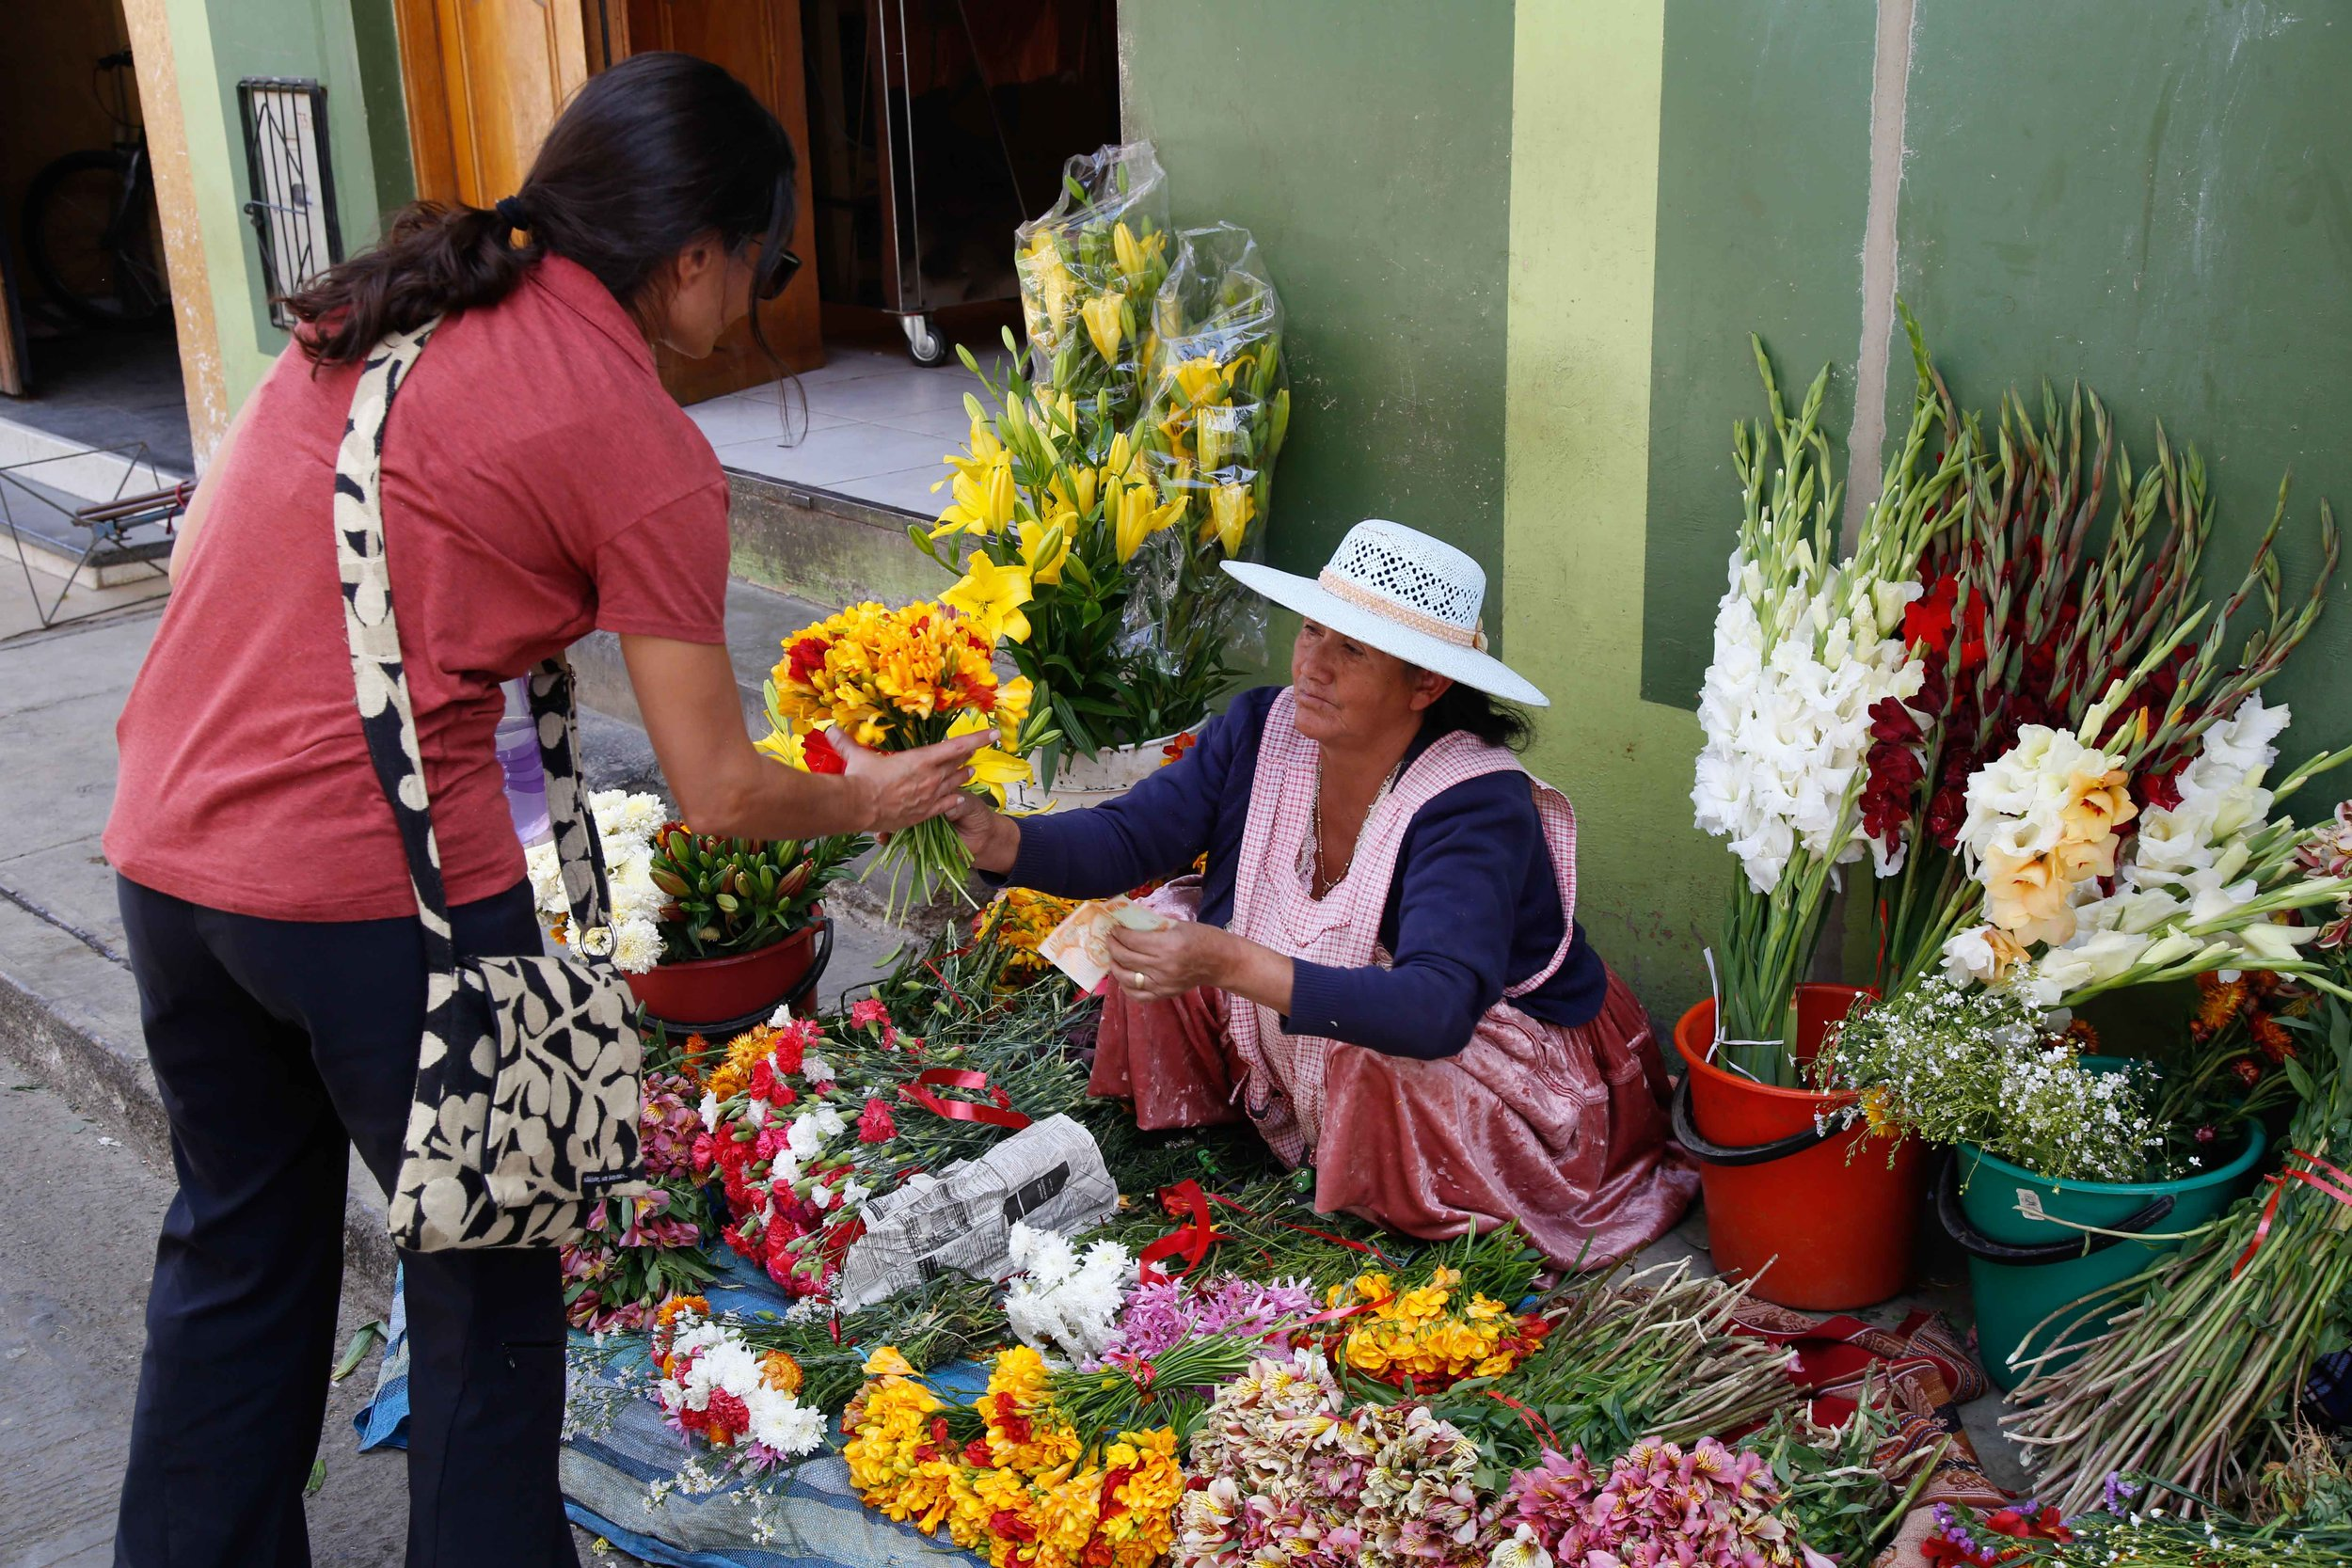 Shopping in the Marketplace